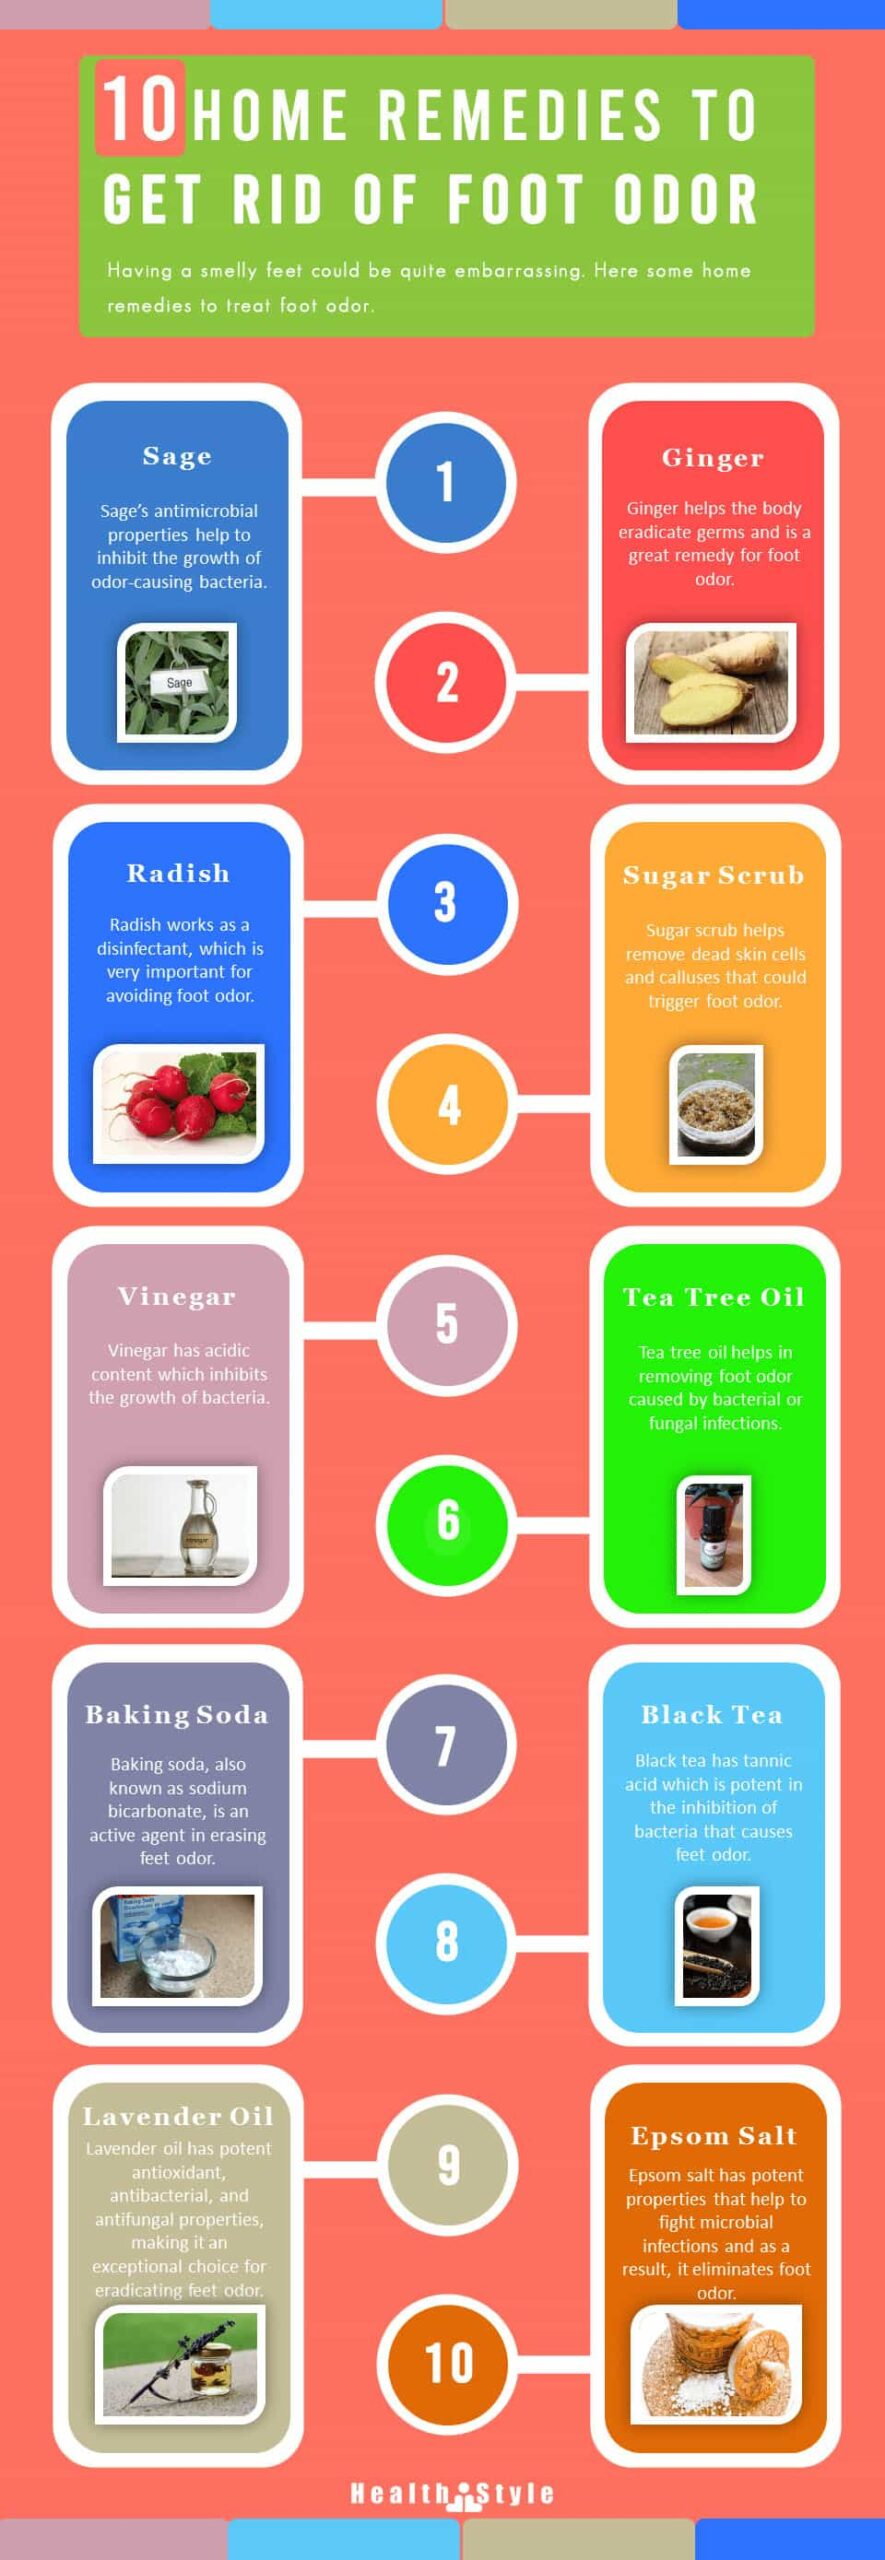 home remedies for smelly feet and Foot odor- Infographic